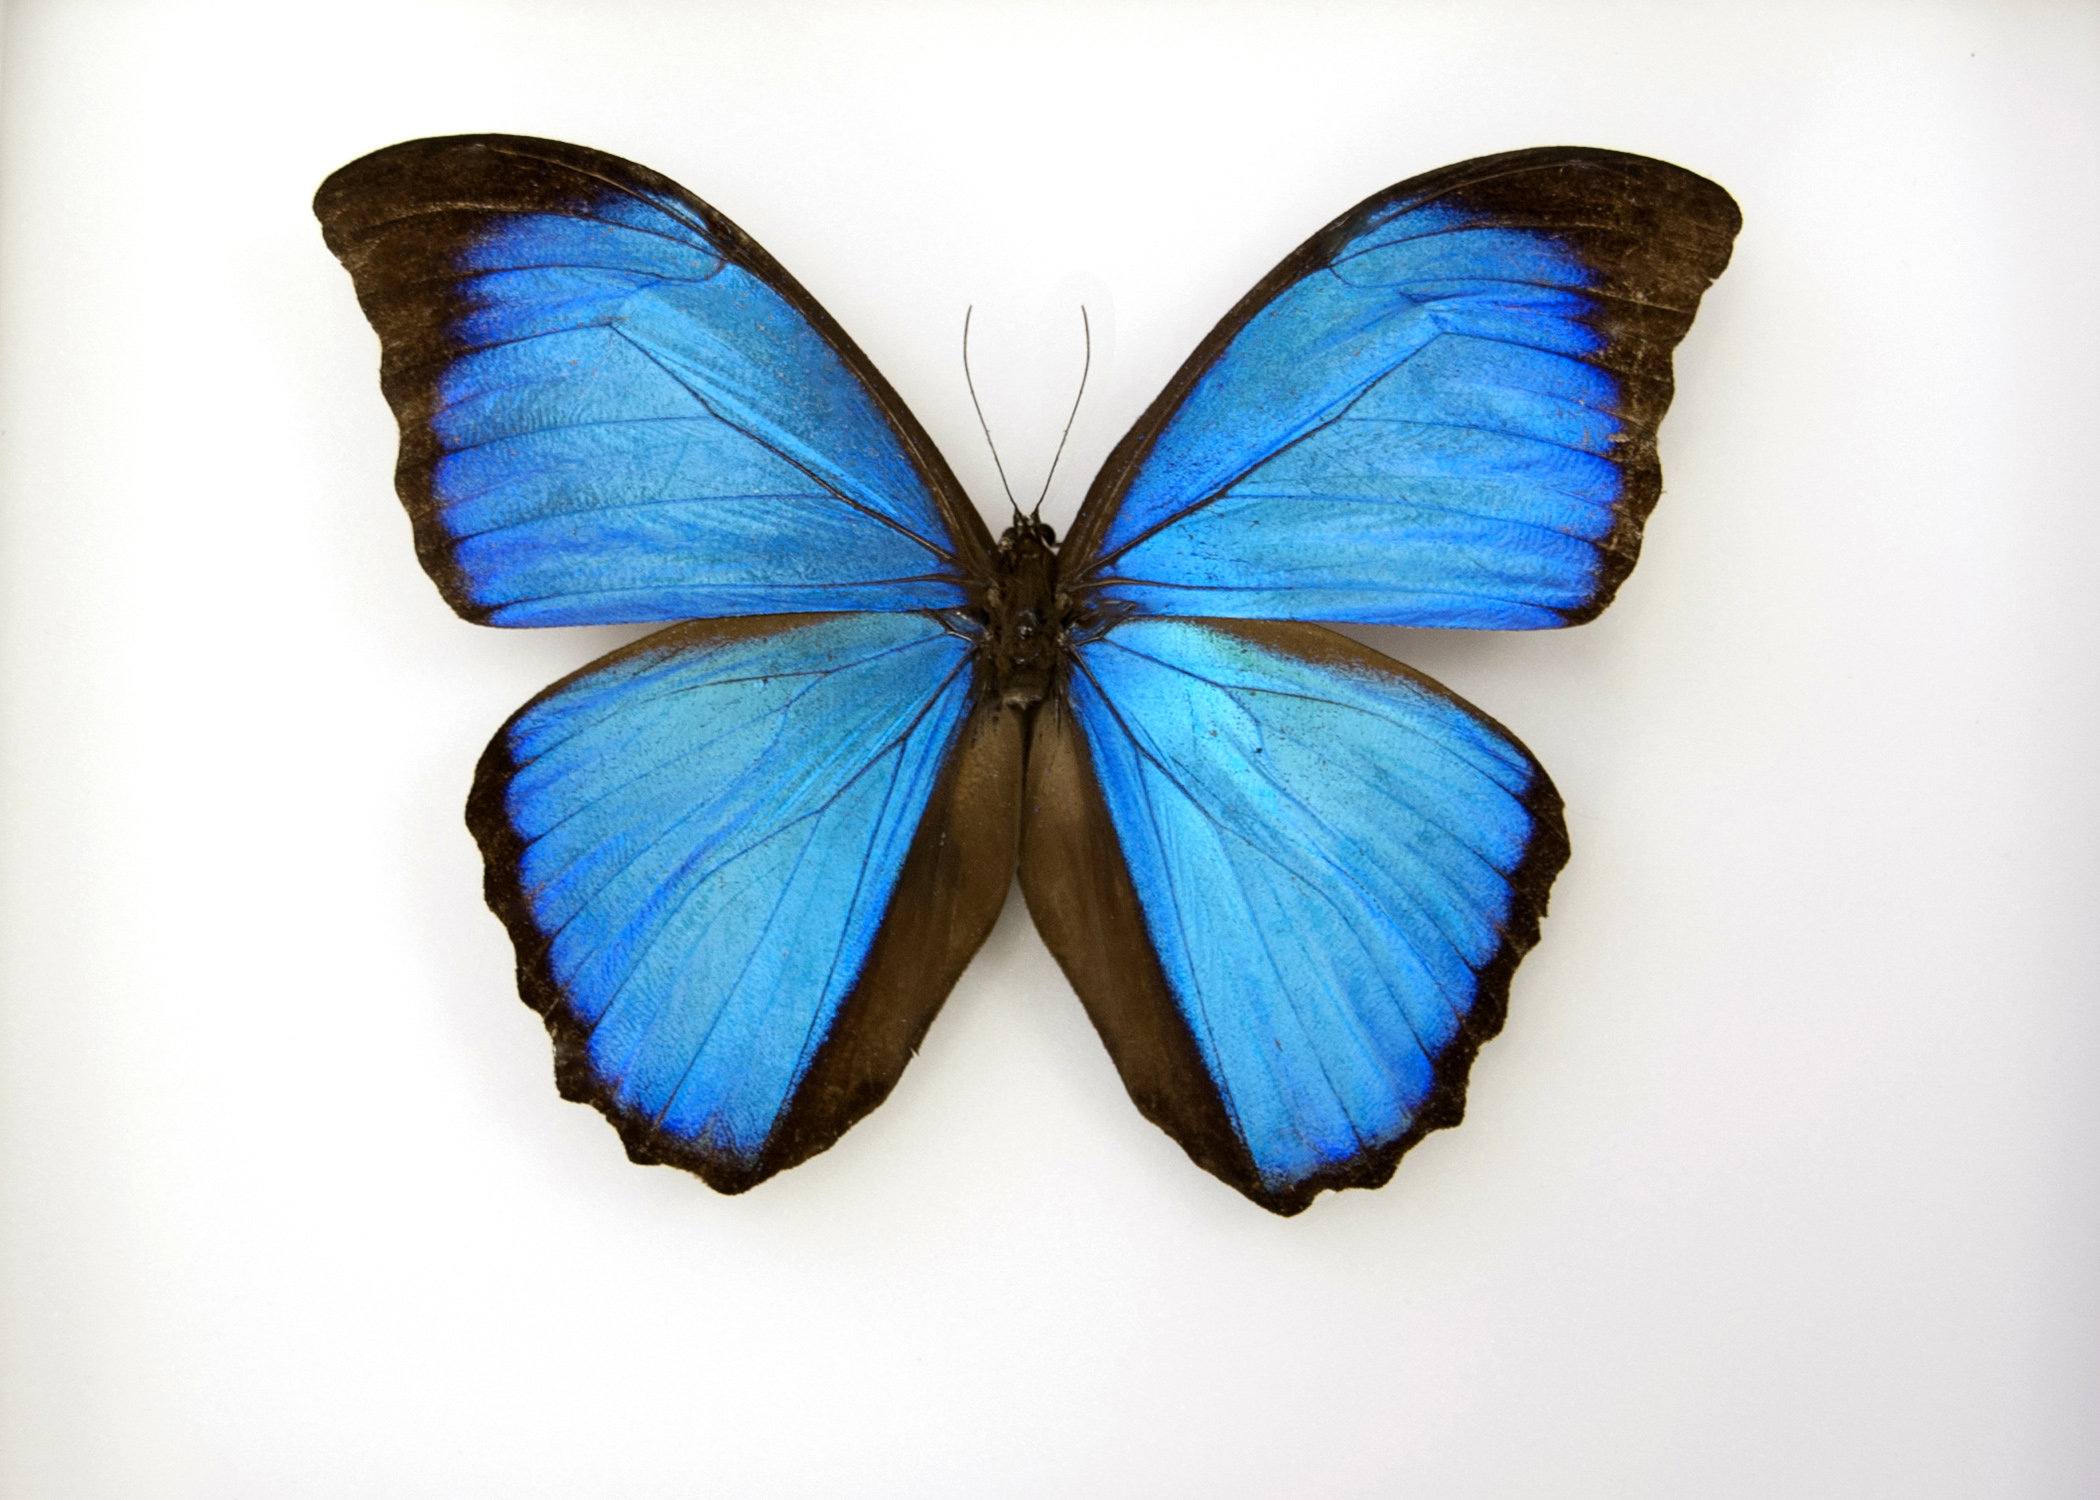 The Plan Collection Private Butterfly Donation Enhances Msu Collection